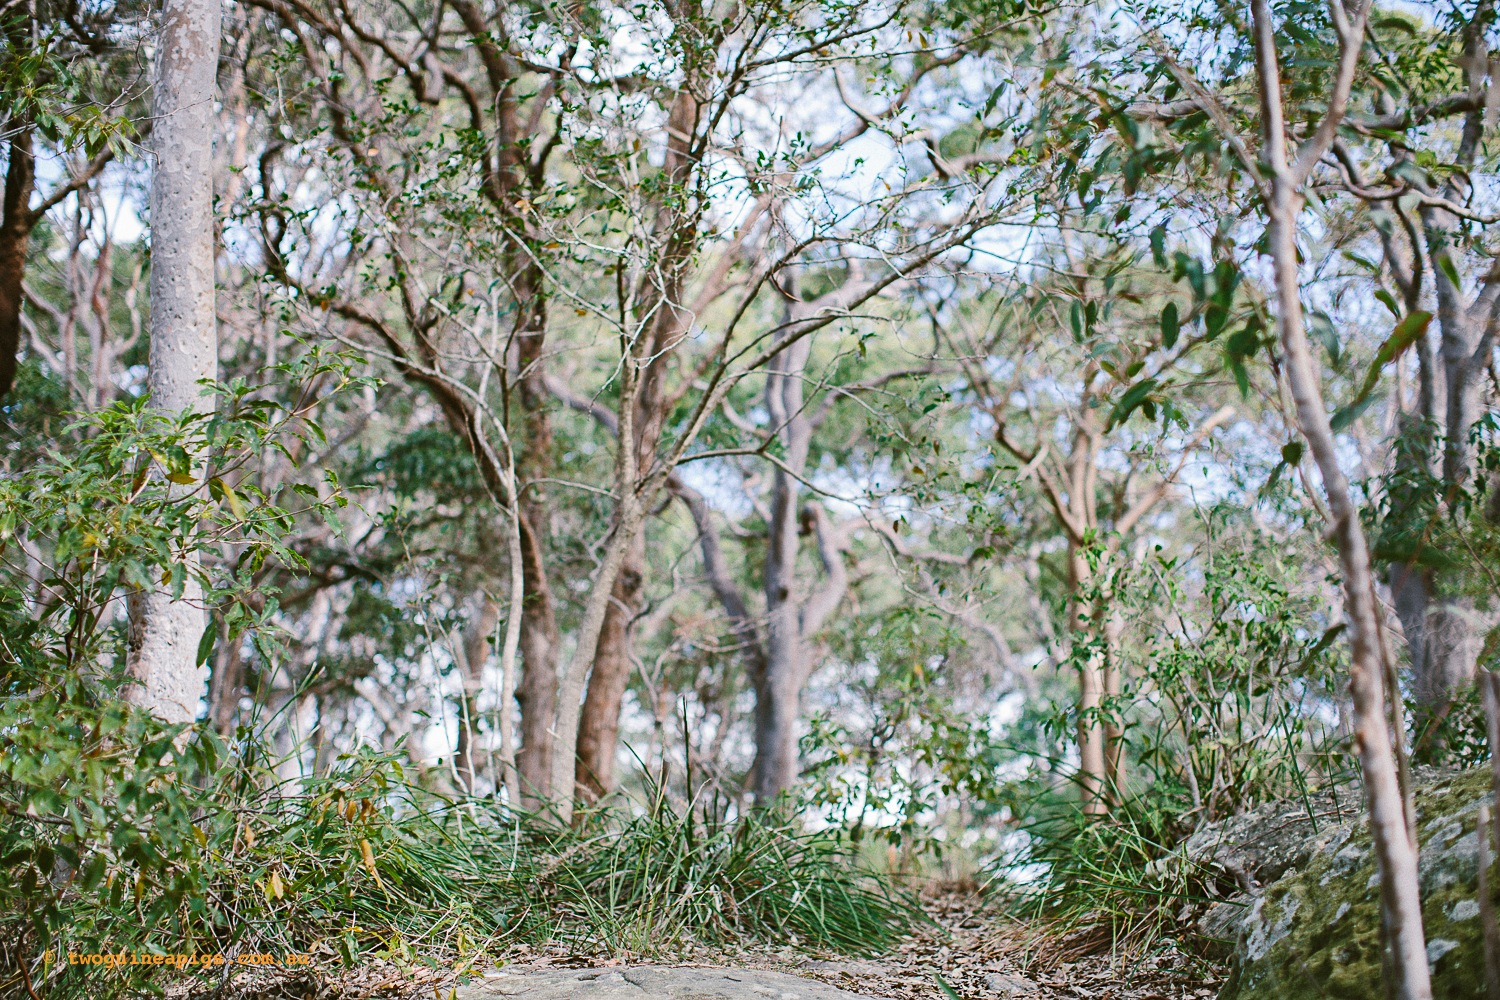 twoguineapigs_pet_photography_berry_island_reserve_wollstonecraft_location_scout_1500-7.jpg